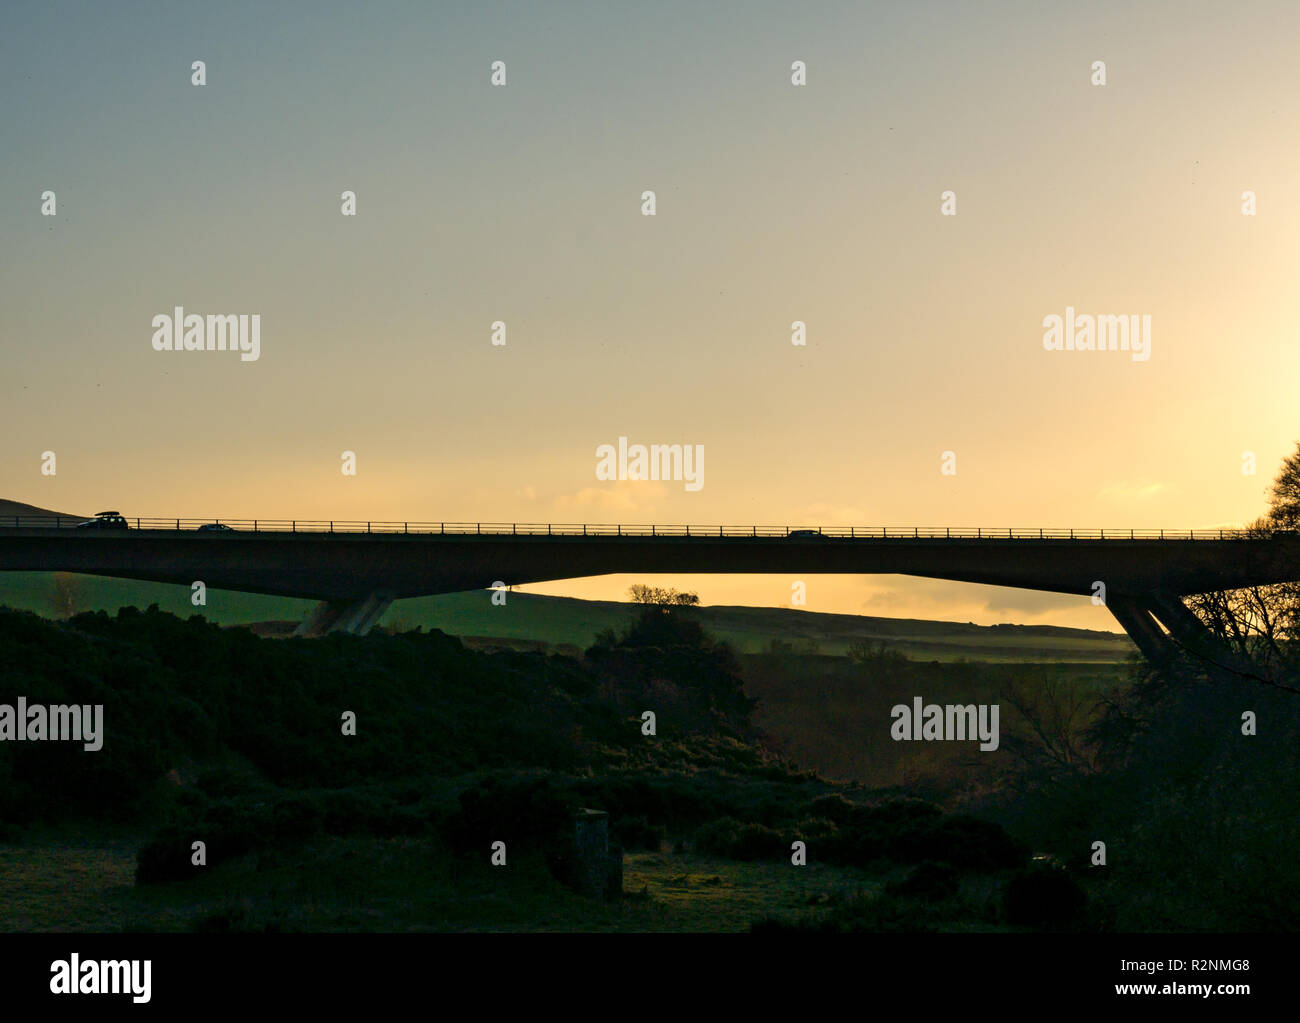 Car driving on A1 River Tyne concrete flyover bridge silhouette by Balfour Beatty Civil Engineering, East Lothian, Scotland, UK - Stock Image